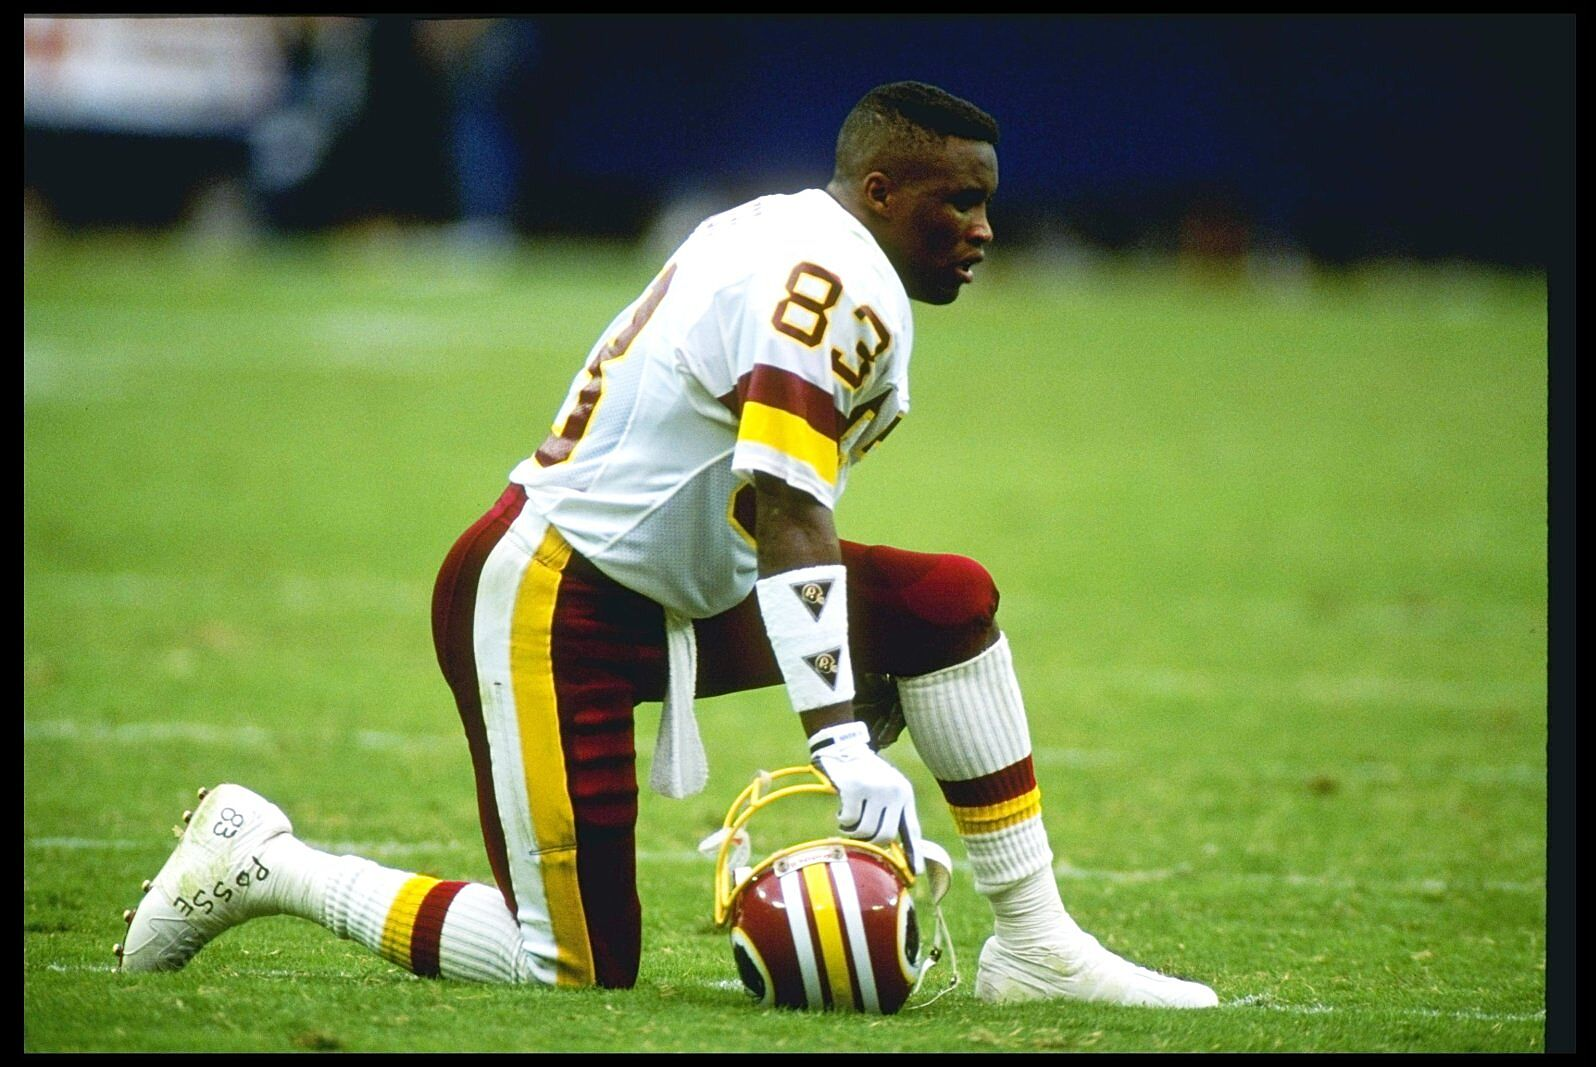 b4d95e75 Washington Redskins: Top 30 players in franchise history - Page 3